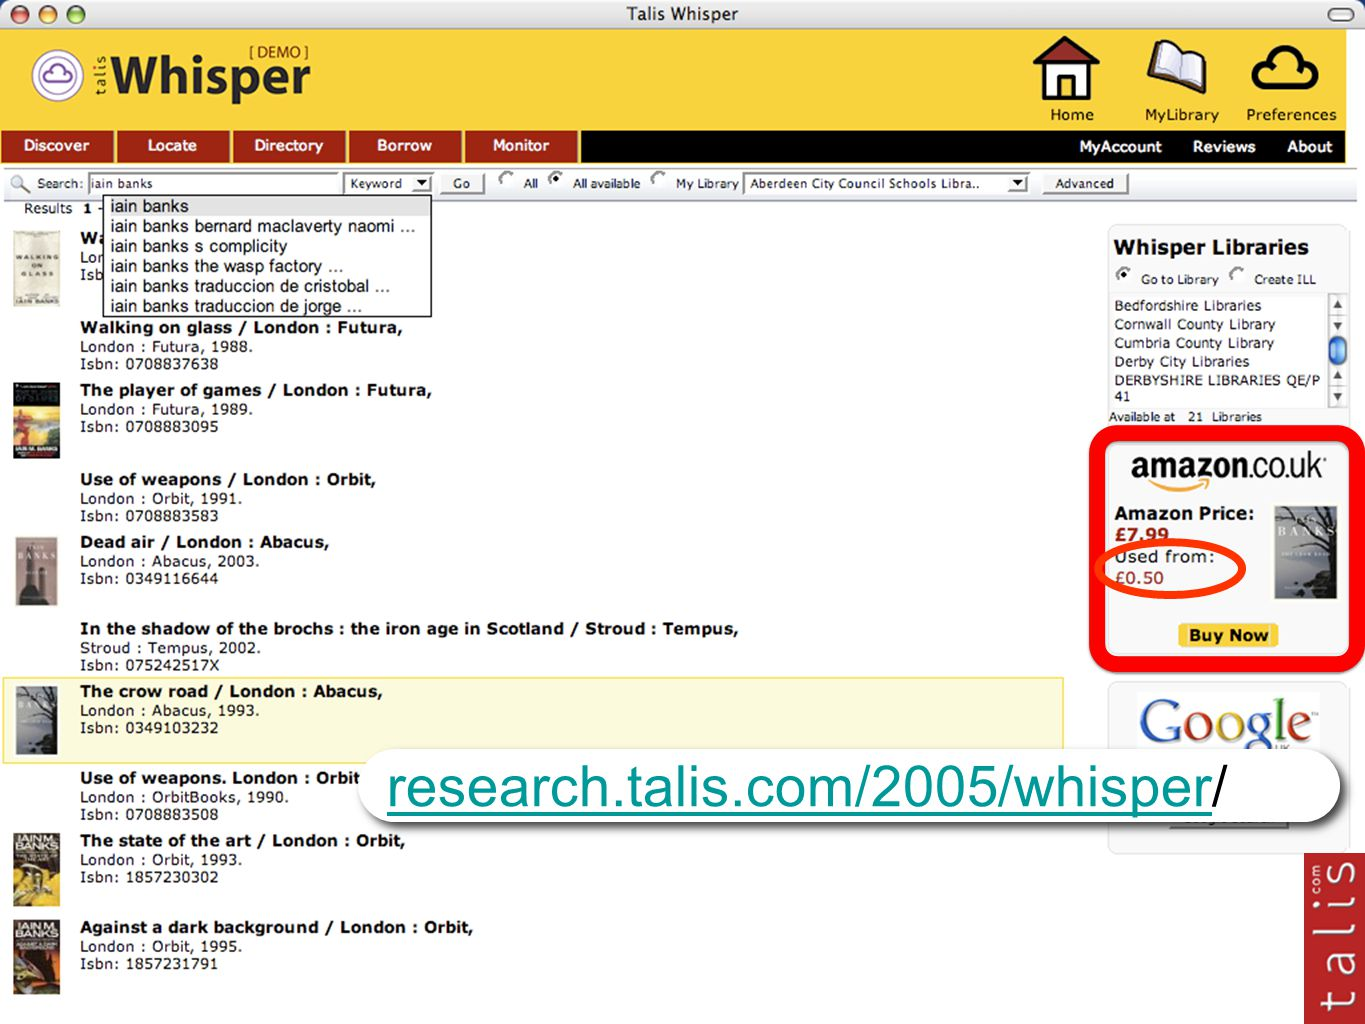 research.talis.com/2005/whisperresearch.talis.com/2005/whisper/